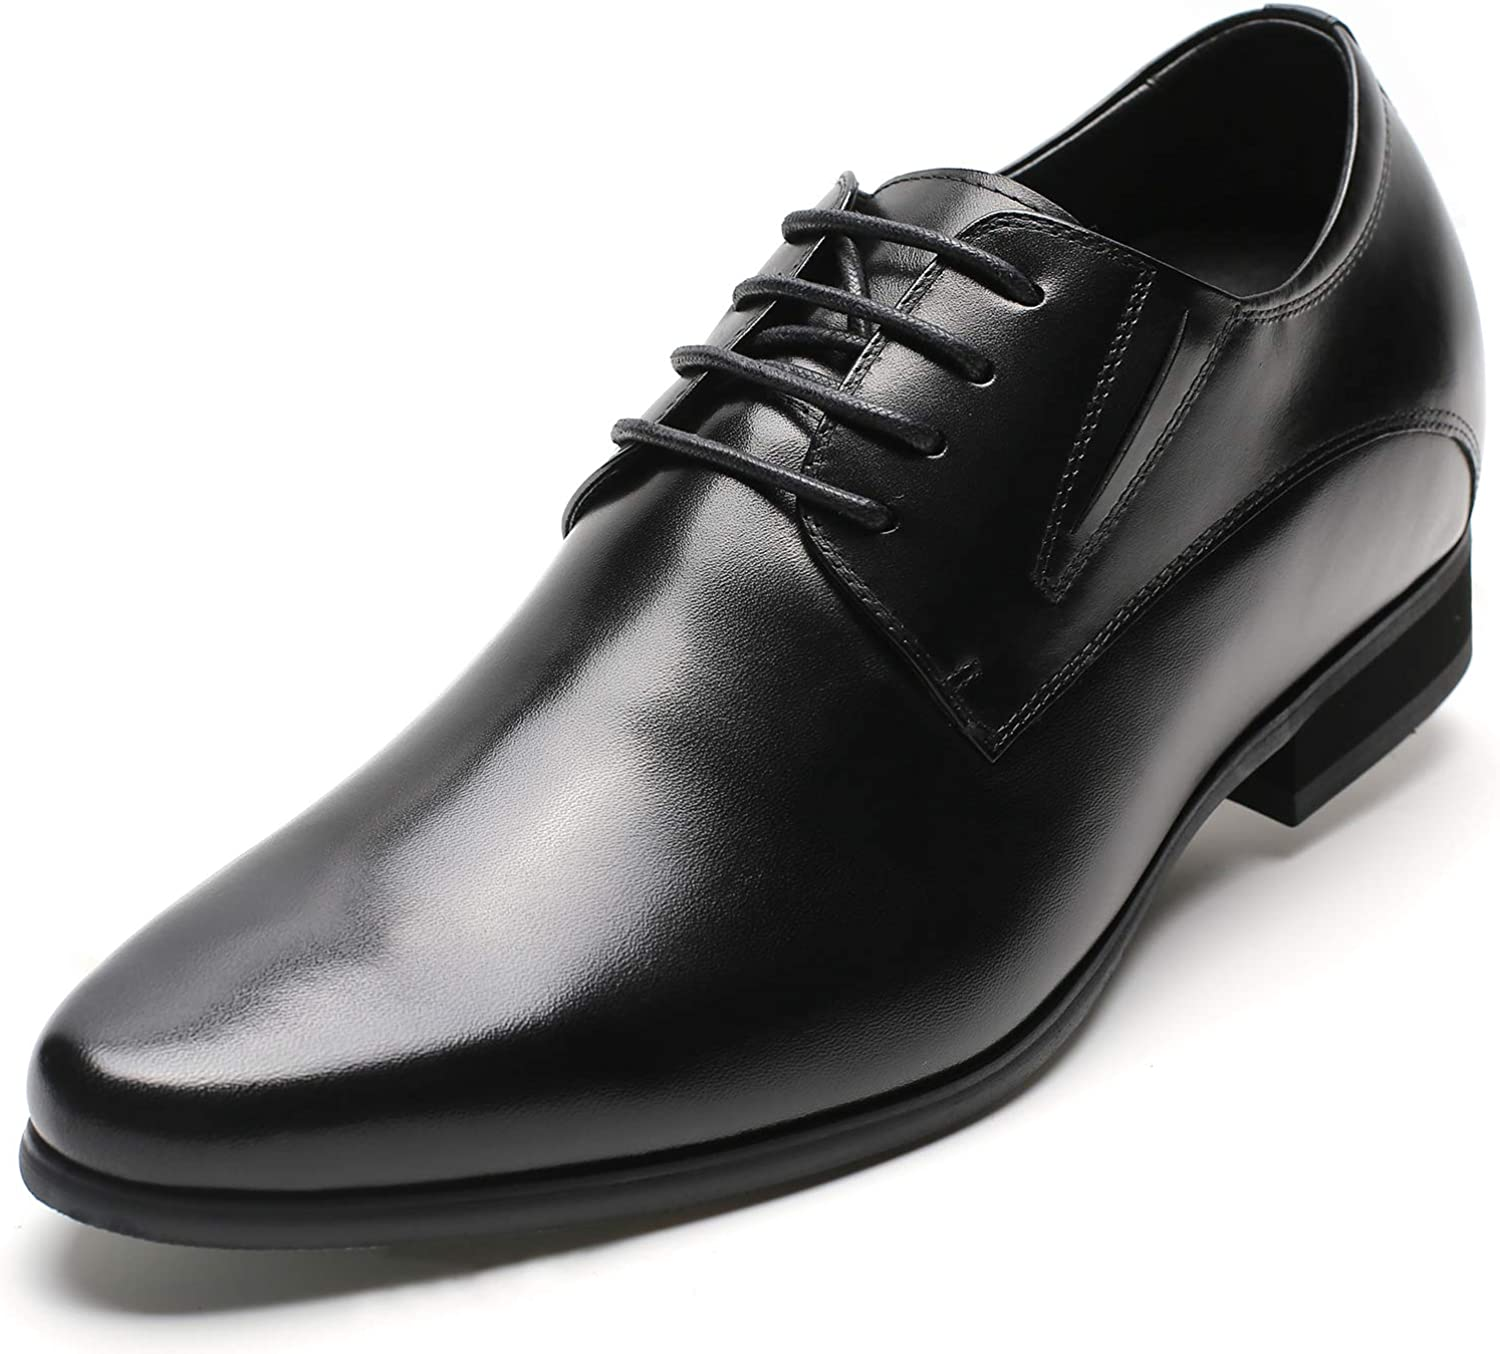 CHAMARIPA Men's Oxford Height Increasing Elevator Shoes Tuxedo Dress Shoes Genuine Leather 3.15'' Taller H62D11K011D